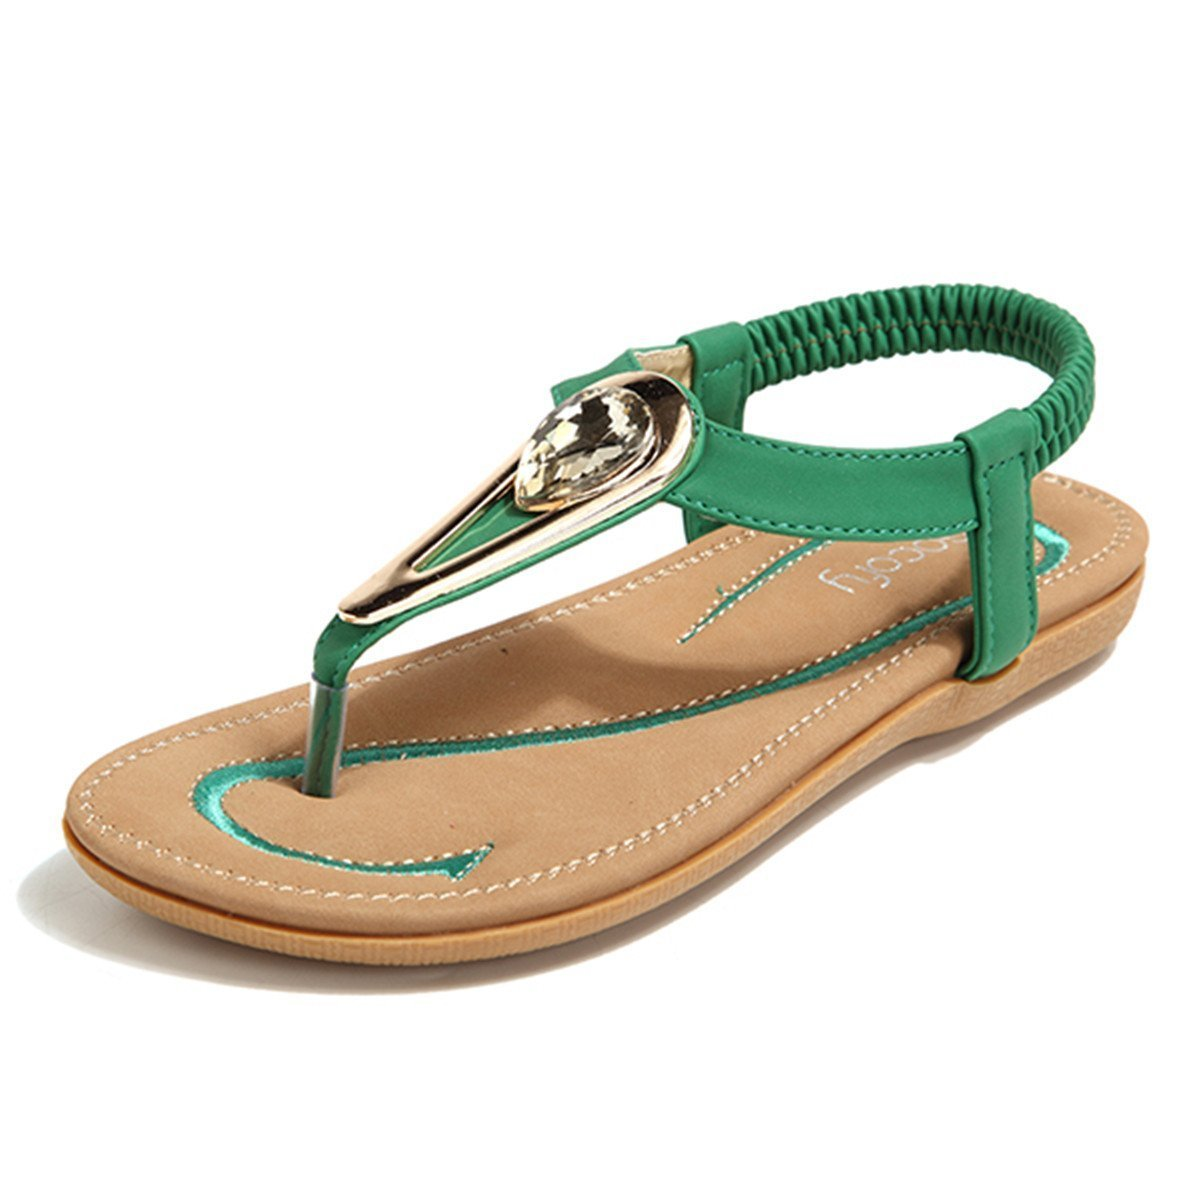 Socofy Bohemian Sandals,Women's Metal Rhinestone Elastic Clip Toe Slip On Summer Beach Casual Sandals Green 8 B(M) US